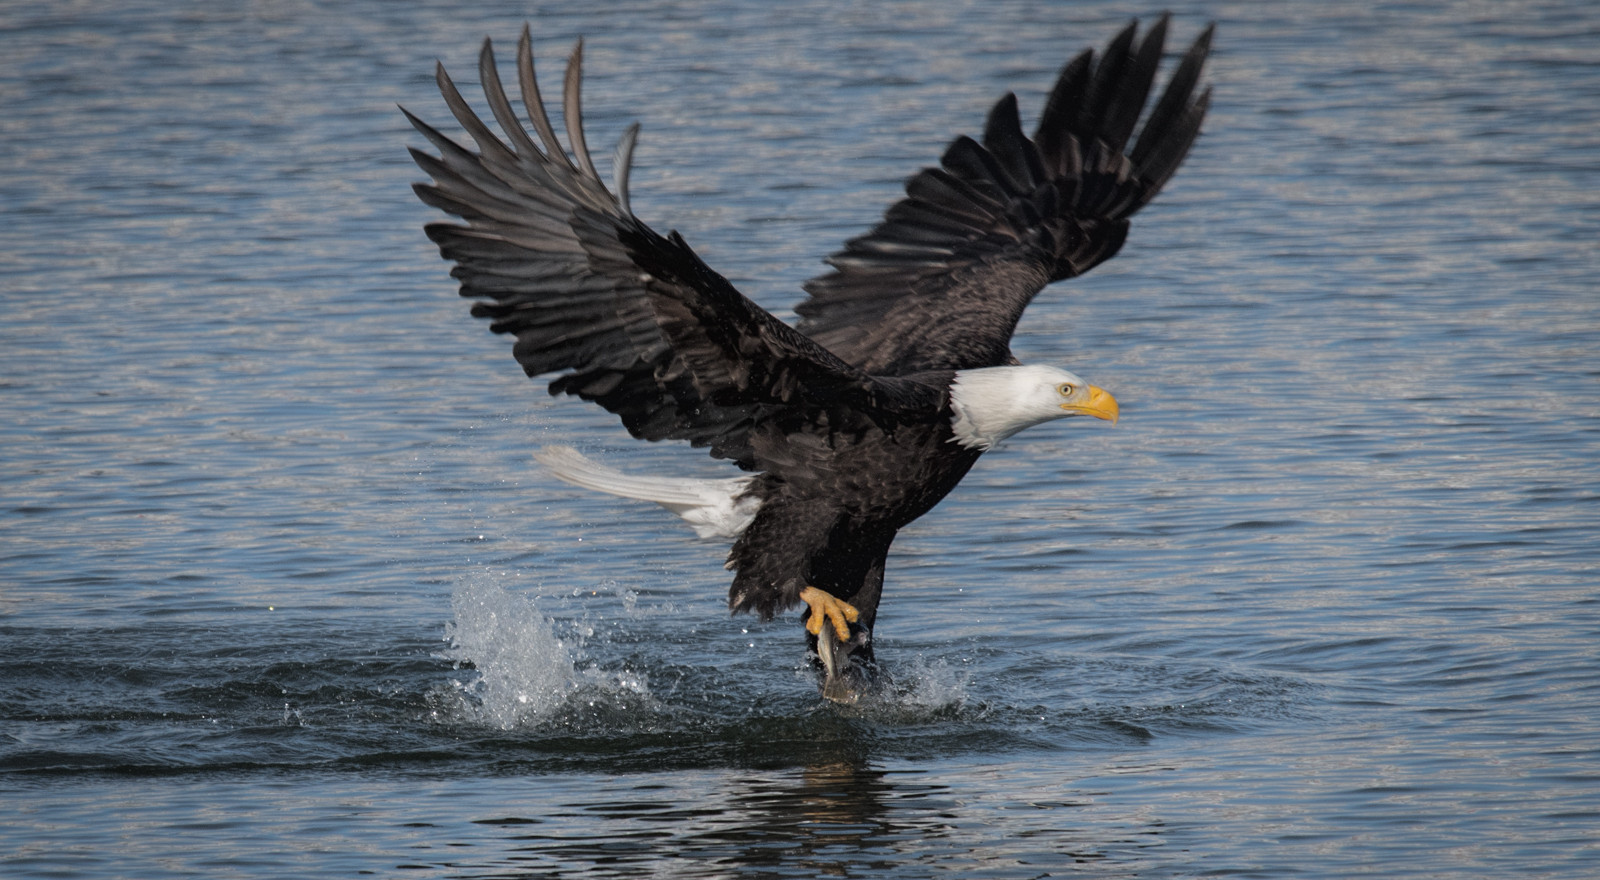 A matter of seconds from the first shot in the sequence, you can see the eagle has caught a small fish.